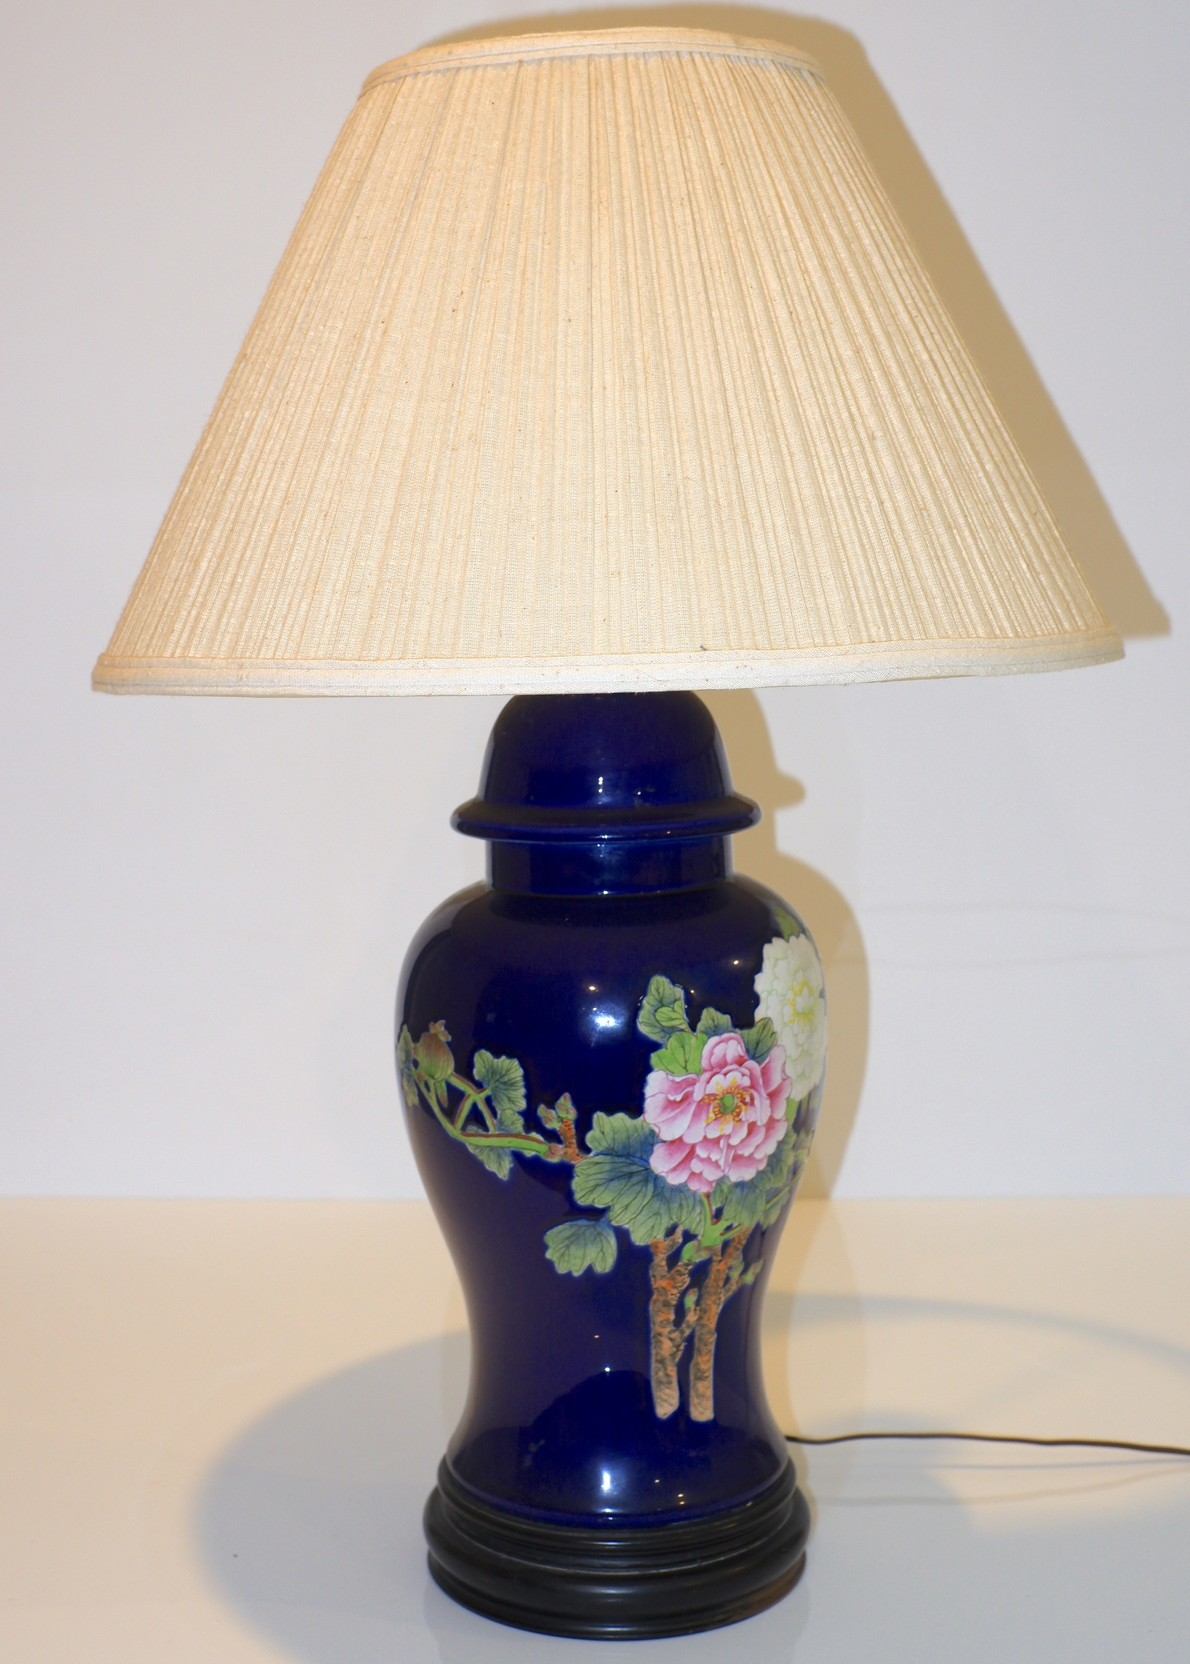 'Blue Glazed Korean Ceramic Table Lamp Hand Painted with Peony'